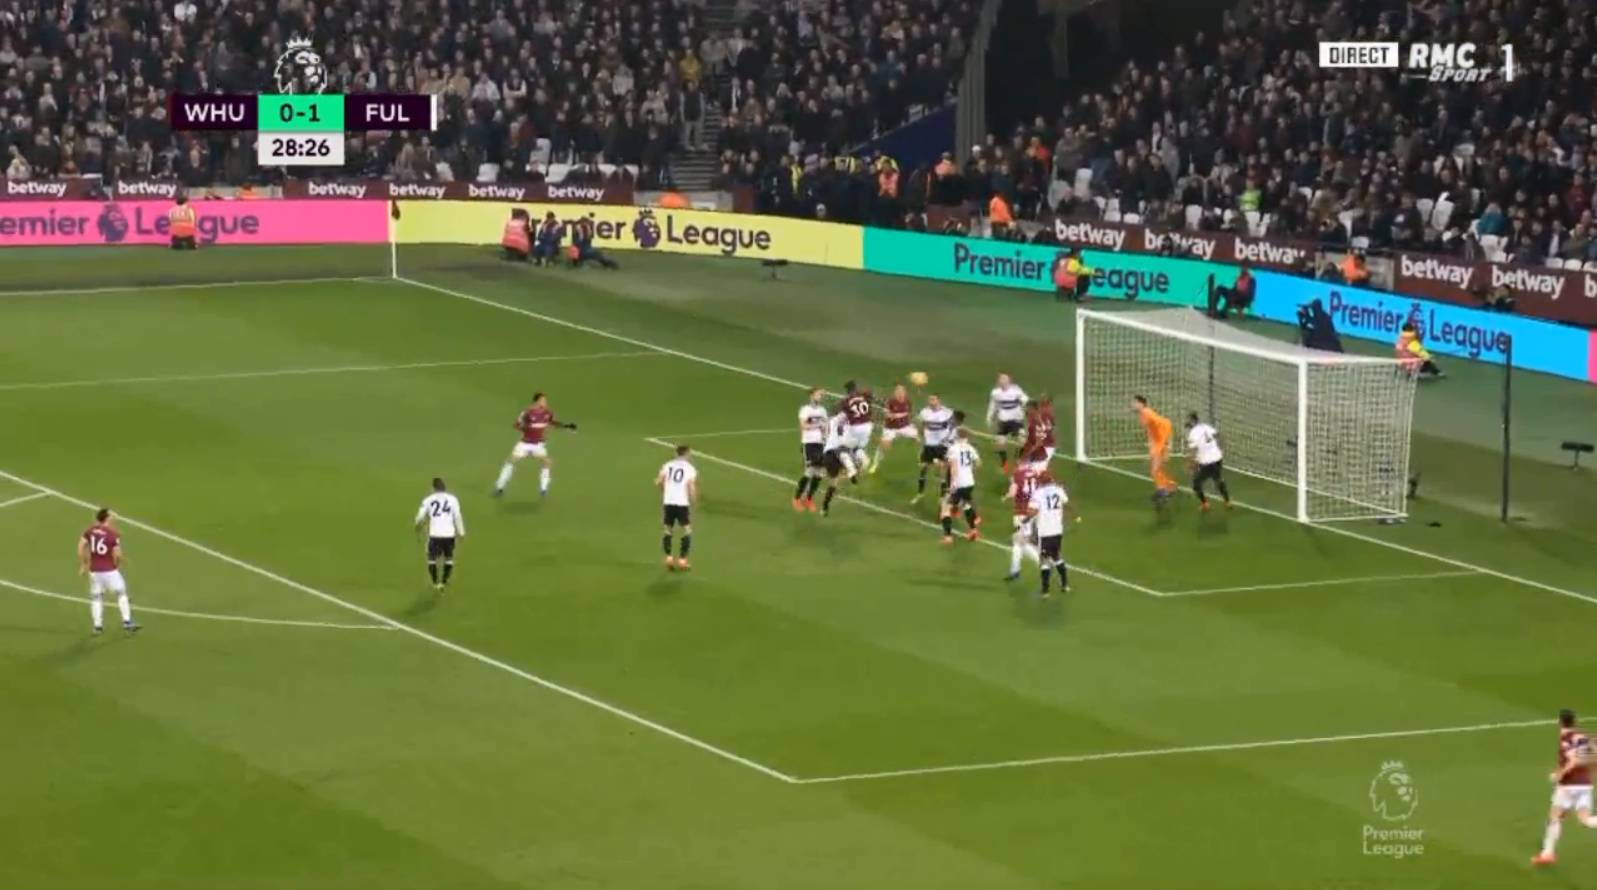 Michail Antonio's header ricocheted against Angelo Ogbonna and fell into the path of a goal-thirsty Hernandez